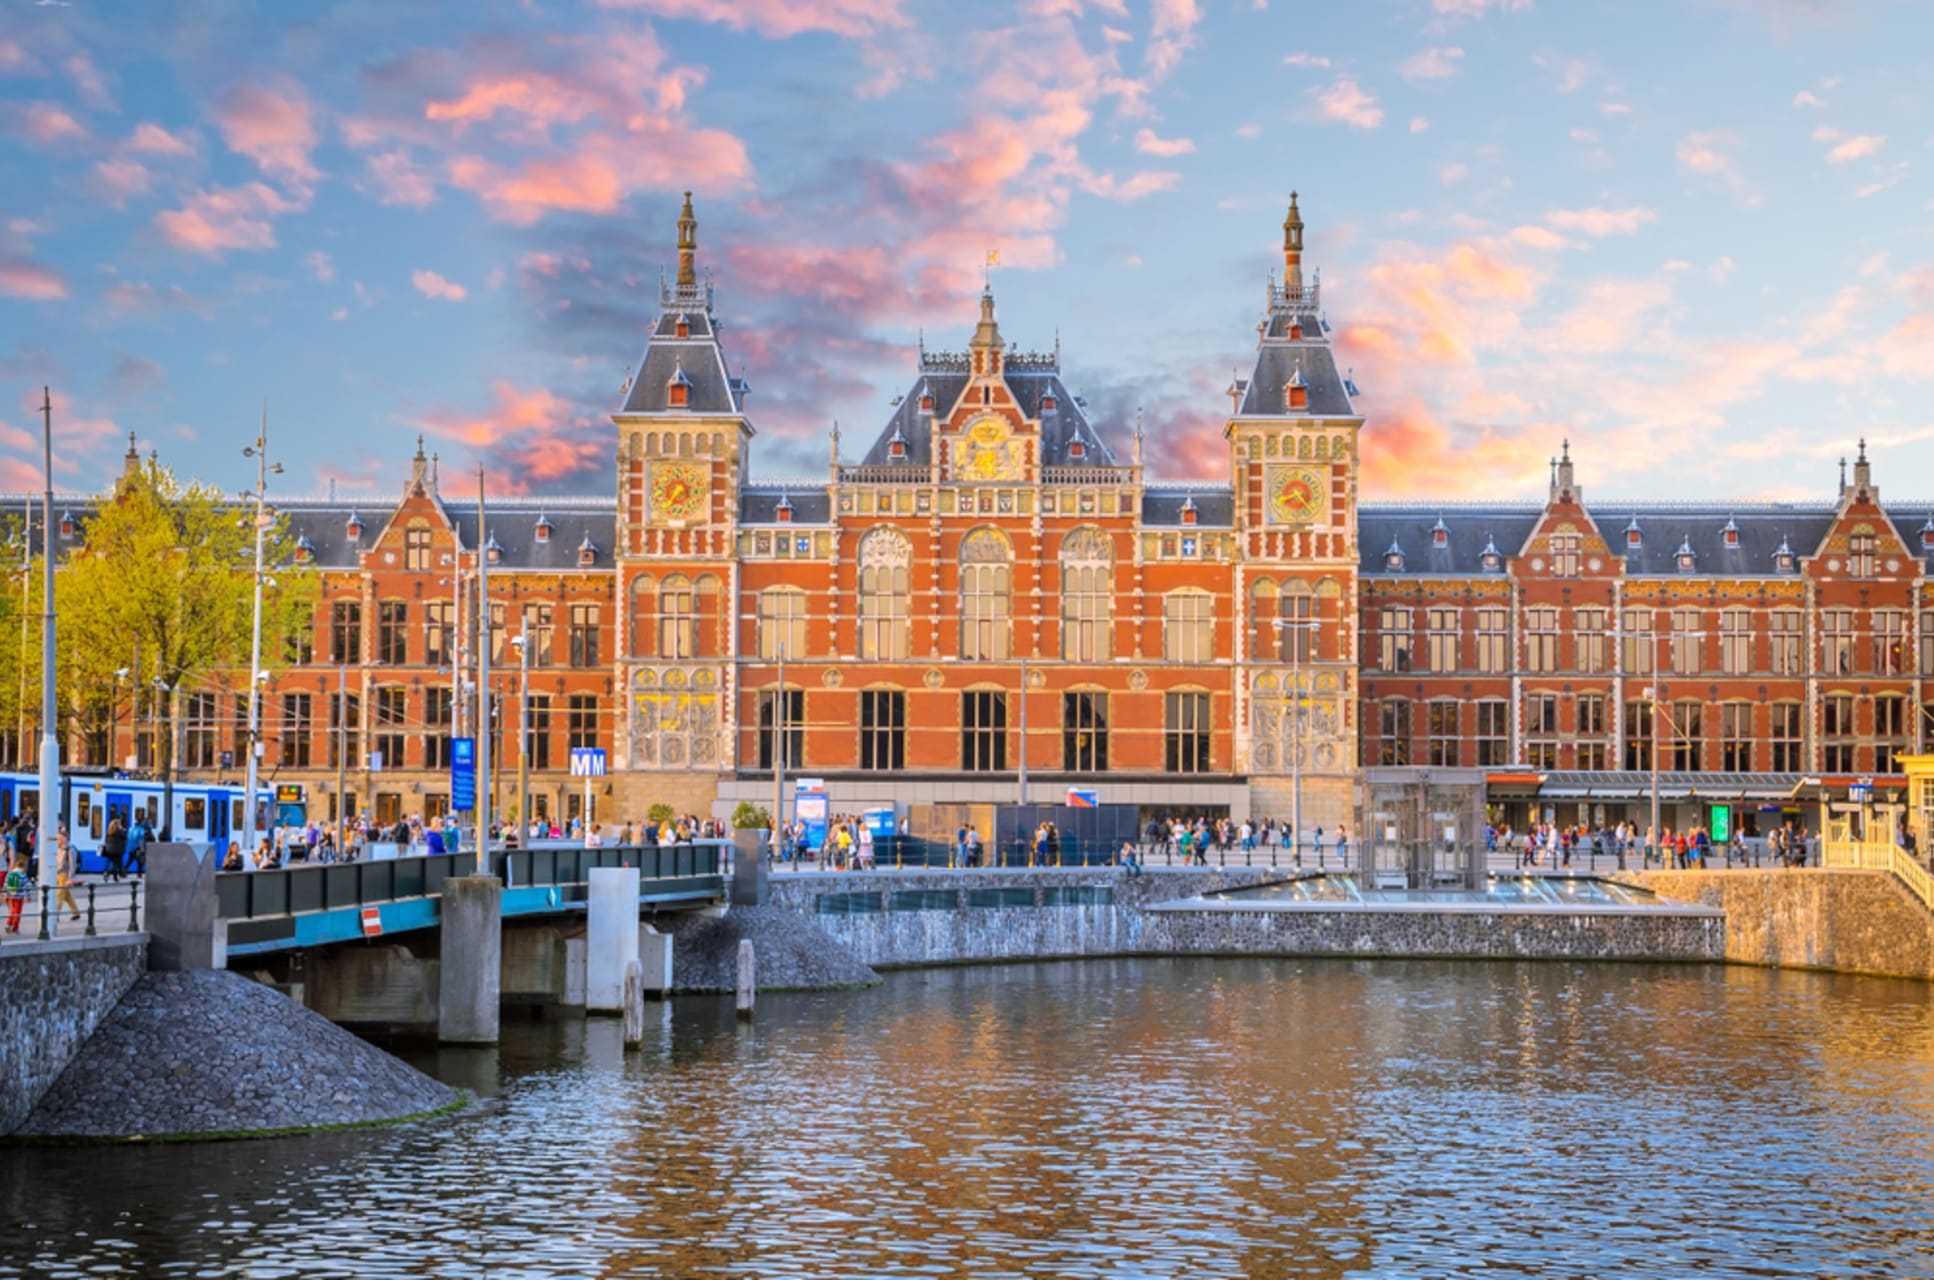 Amsterdam - The Beautiful and Vibrant Amsterdam Central Station